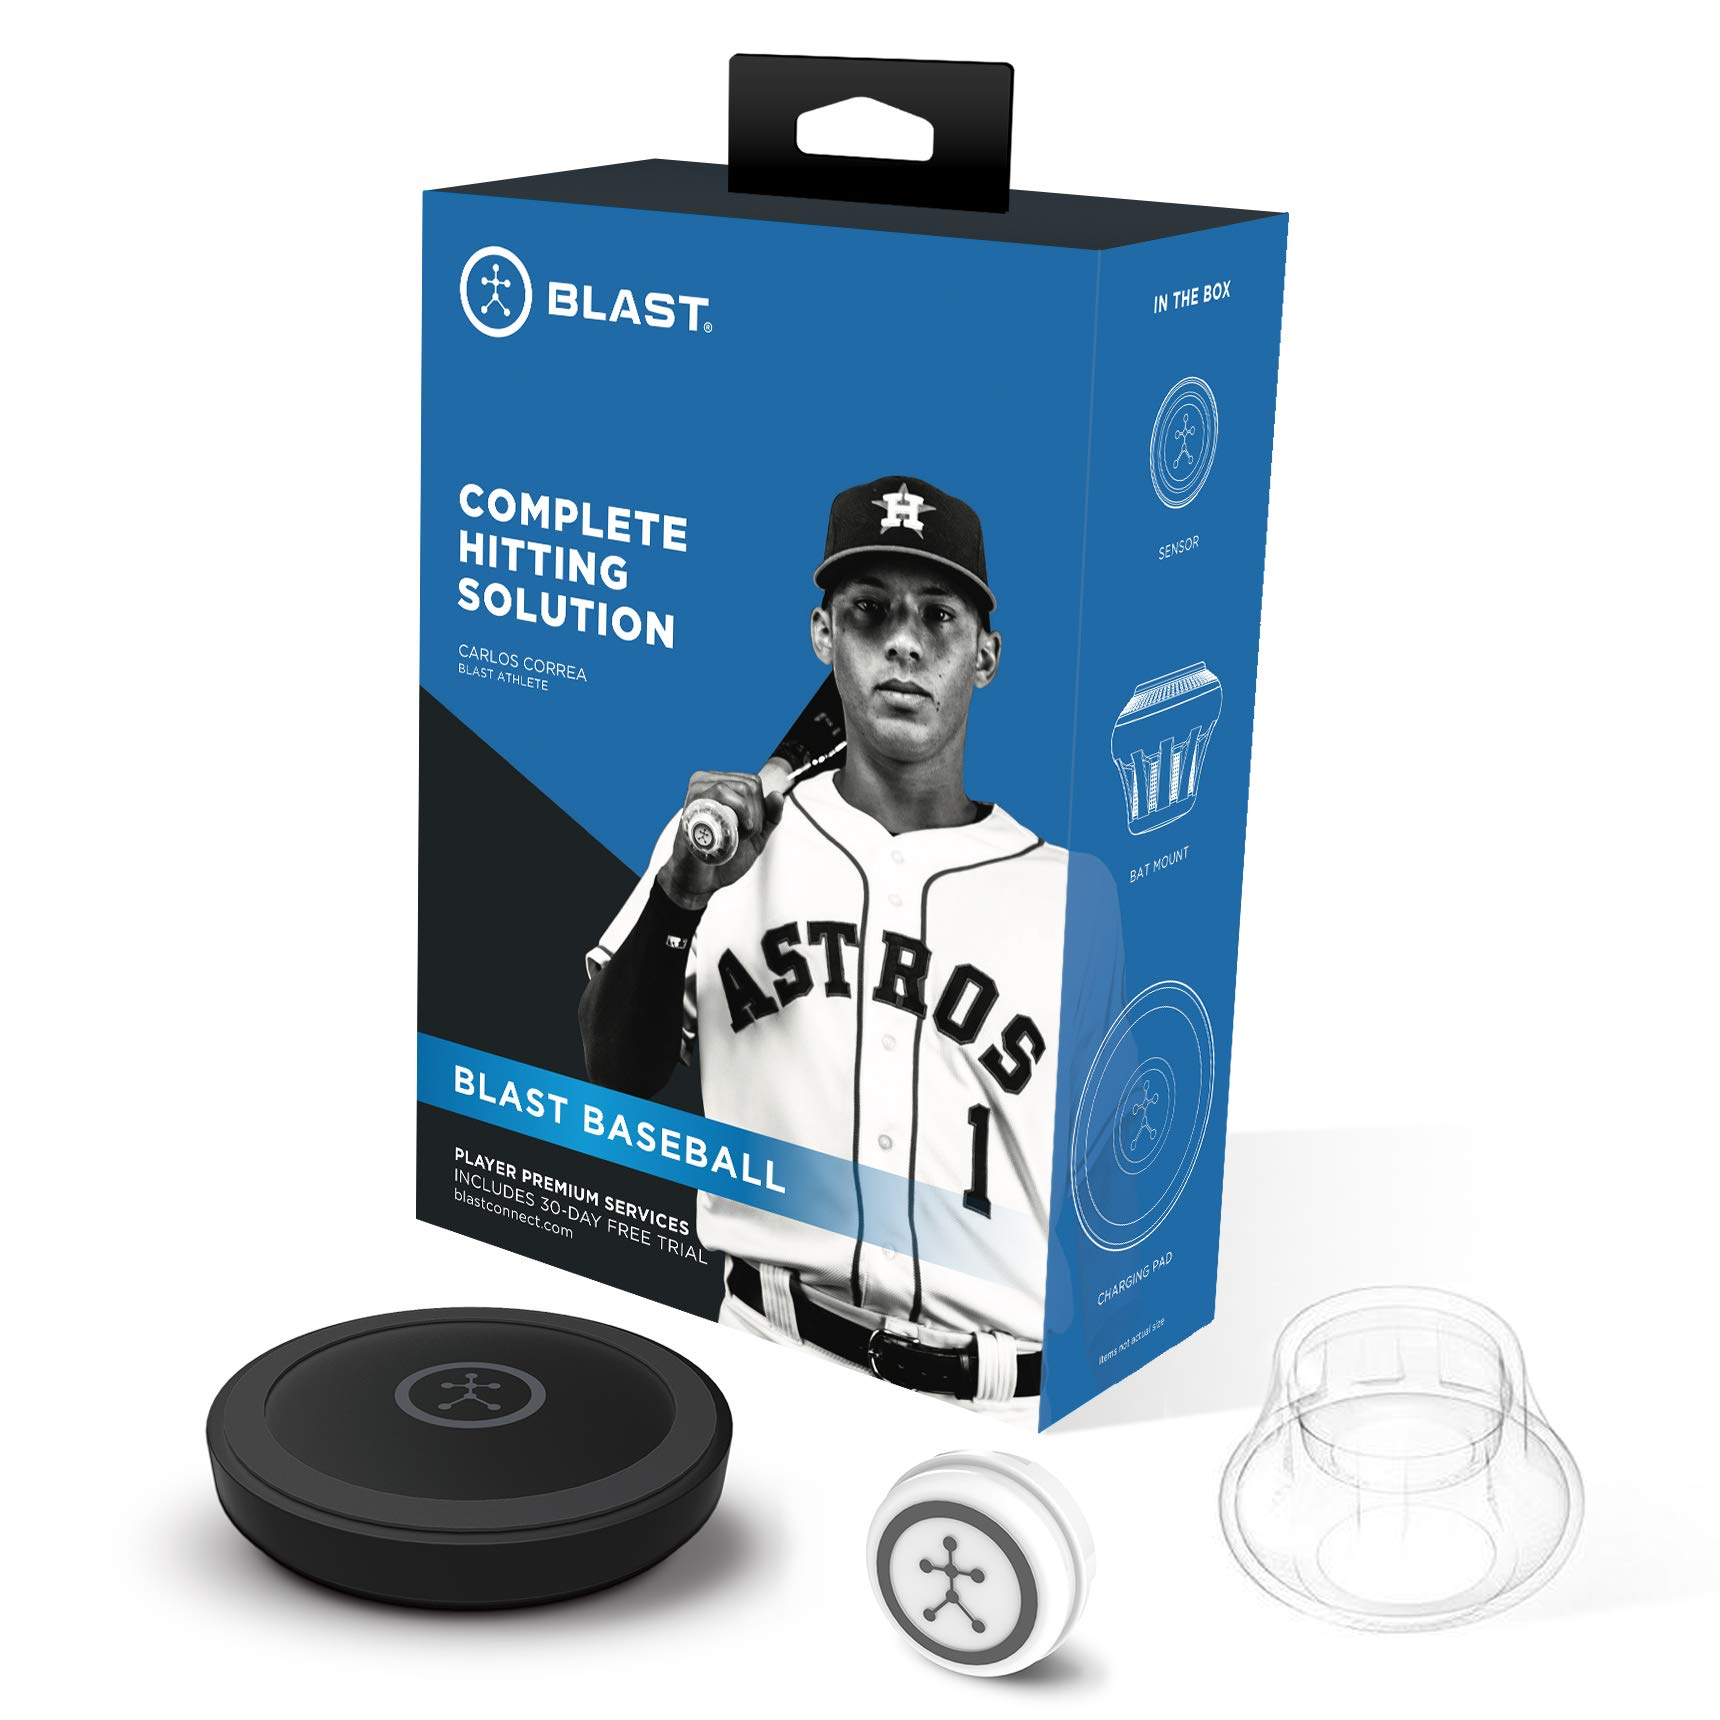 Blast Baseball Swing Trainer | Analyzes Swing | Tracks Metrics | Video Capture Creates Highlights | App Enabled, iOS and Android Compatible | Real Time Results by Blast Motion